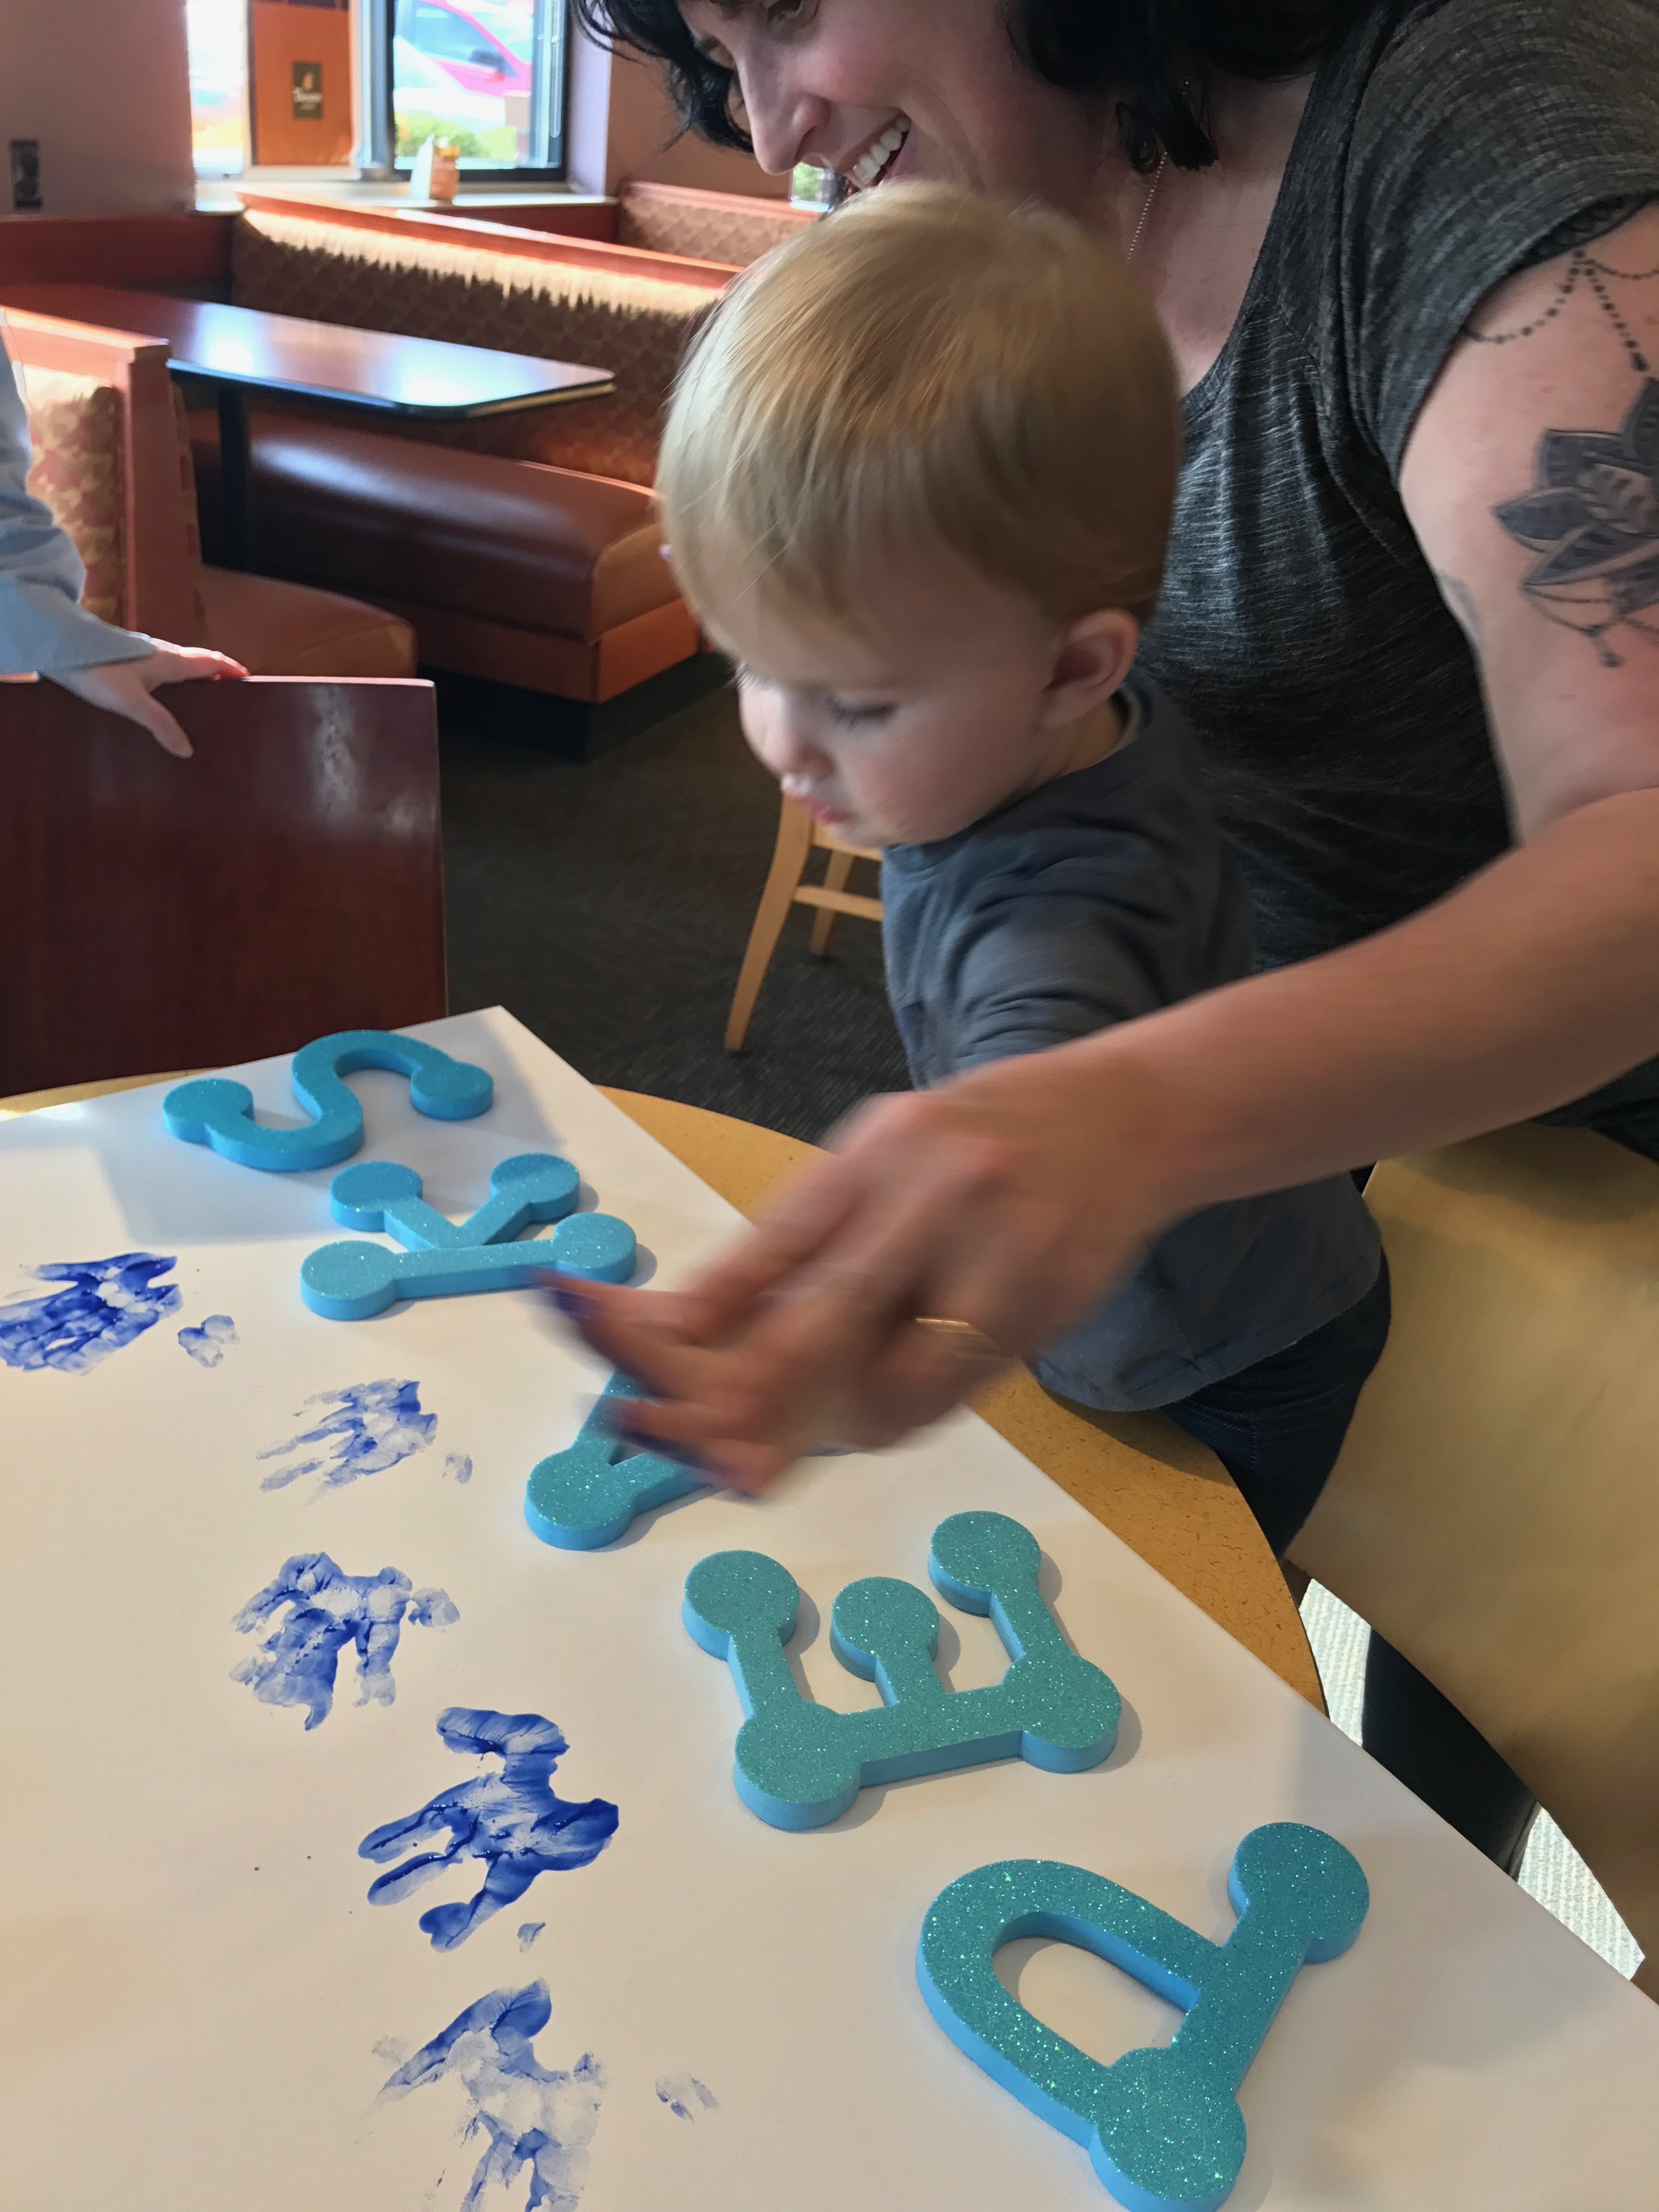 Lending her hands to Autism Speaks at Panera in Columbus, OH